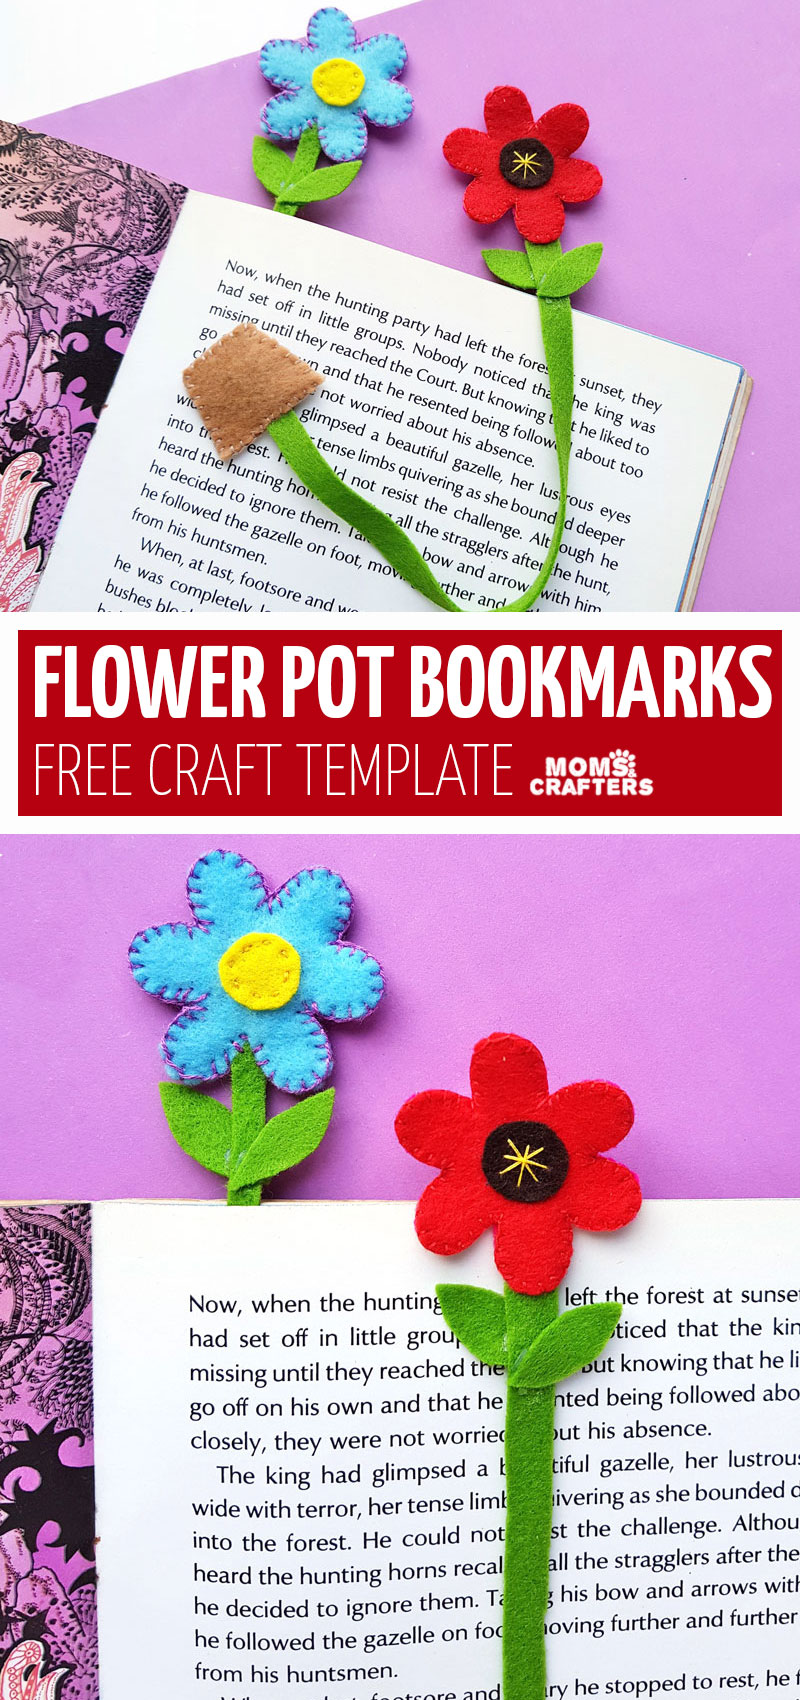 Click for a free template to make this flower bookmarks craft! This fun back to school craft for tweens is great to encourage reading and a fun beginner sewing project fort eens and tweens.